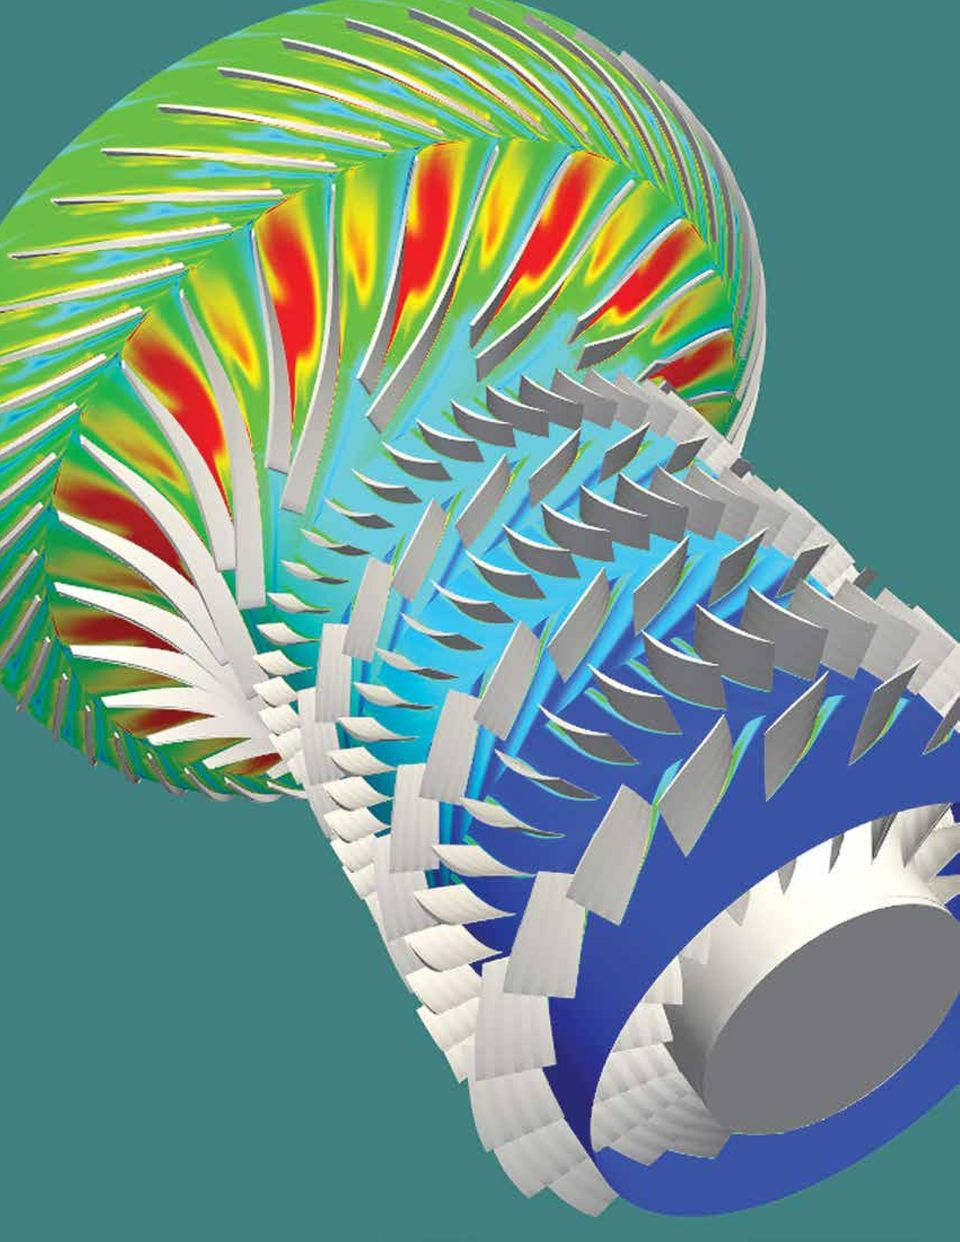 turbomachinery design system that